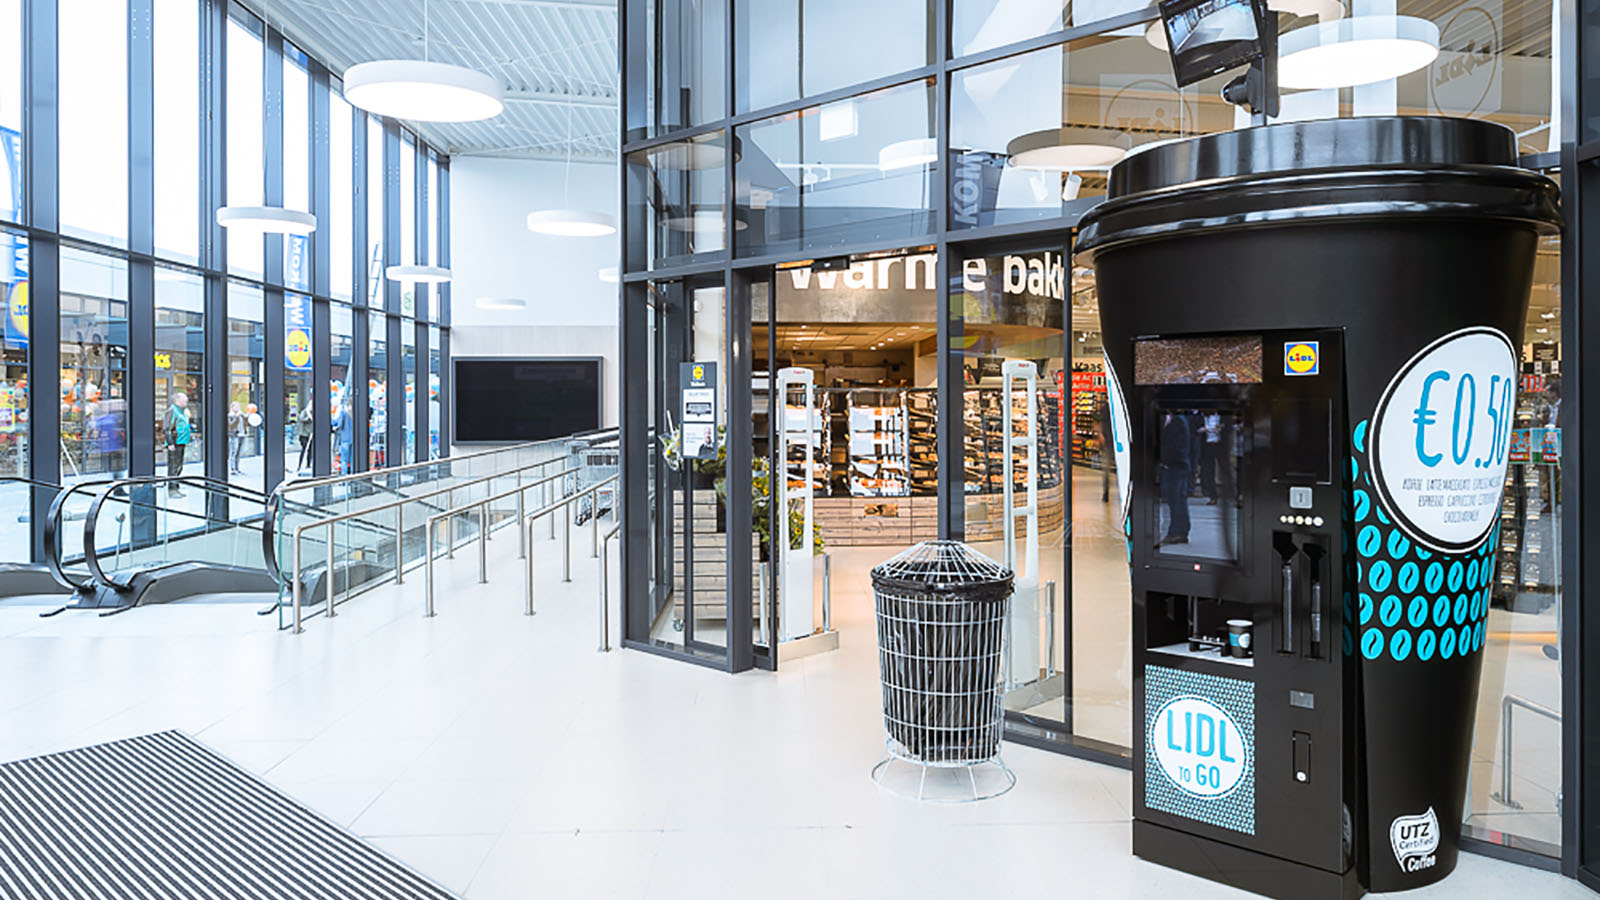 Lidl's coffee cup machine display